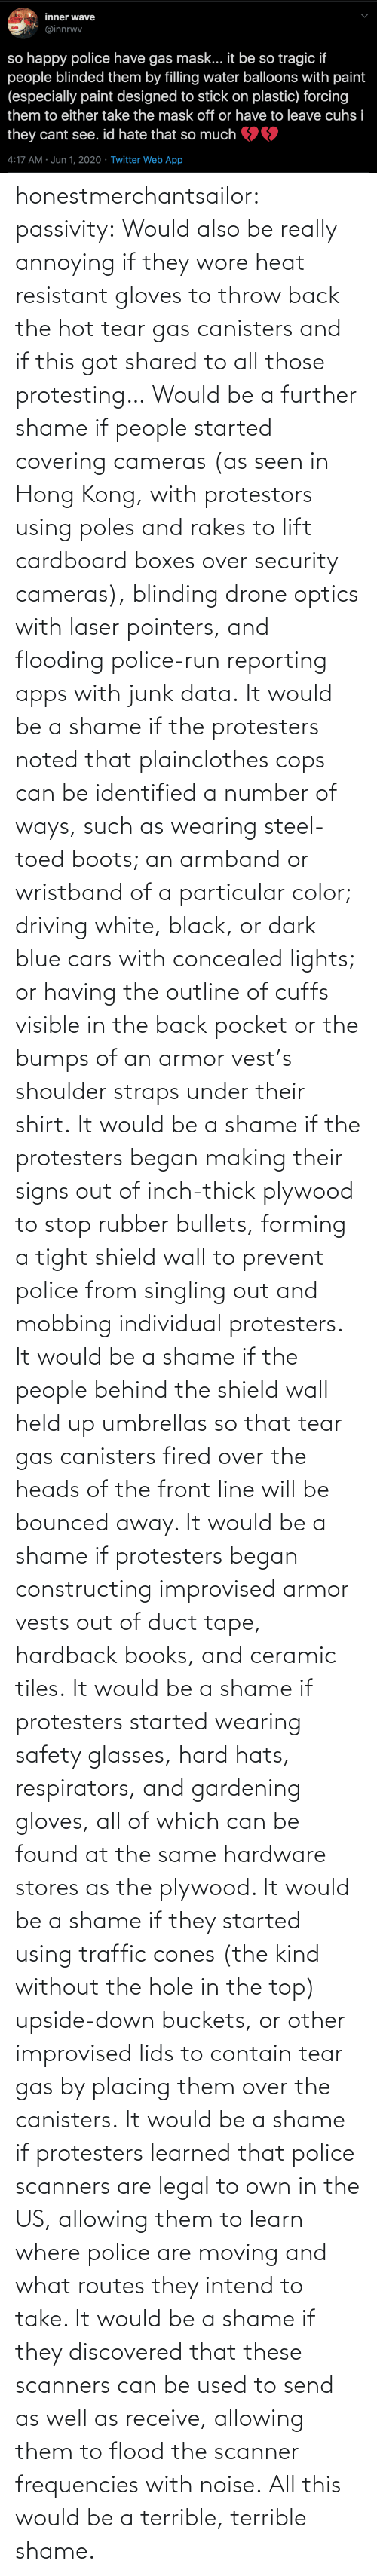 same: honestmerchantsailor: passivity: Would also be really annoying if they wore heat resistant gloves to throw back the hot tear gas canisters and if this got shared to all those protesting… Would be a further shame if people started covering cameras (as seen in Hong Kong, with protestors using poles and rakes to lift cardboard boxes over security cameras), blinding drone optics with laser pointers, and flooding police-run reporting apps with junk data. It would be a shame if the protesters noted that plainclothes cops can be identified a number of ways, such as wearing steel-toed boots; an armband or wristband of a particular color; driving white, black, or dark blue cars with concealed lights; or having the outline of cuffs visible in the back pocket or the bumps of an armor vest's shoulder straps under their shirt. It would be a shame if the protesters began making their signs out of inch-thick plywood to stop rubber bullets, forming a tight shield wall to prevent police from singling out and mobbing individual protesters. It would be a shame if the people behind the shield wall held up umbrellas so that tear gas canisters fired over the heads of the front line will be bounced away. It would be a shame if protesters began constructing improvised armor vests out of duct tape, hardback books, and ceramic tiles. It would be a shame if protesters started wearing safety glasses, hard hats, respirators, and gardening gloves, all of which can be found at the same hardware stores as the plywood. It would be a shame if they started using traffic cones (the kind without the hole in the top) upside-down buckets, or other improvised lids to contain tear gas by placing them over the canisters. It would be a shame if protesters learned that police scanners are legal to own in the US, allowing them to learn where police are moving and what routes they intend to take. It would be a shame if they discovered that these scanners can be used to send as well as receive, allowing them to flood the scanner frequencies with noise. All this would be a terrible, terrible shame.